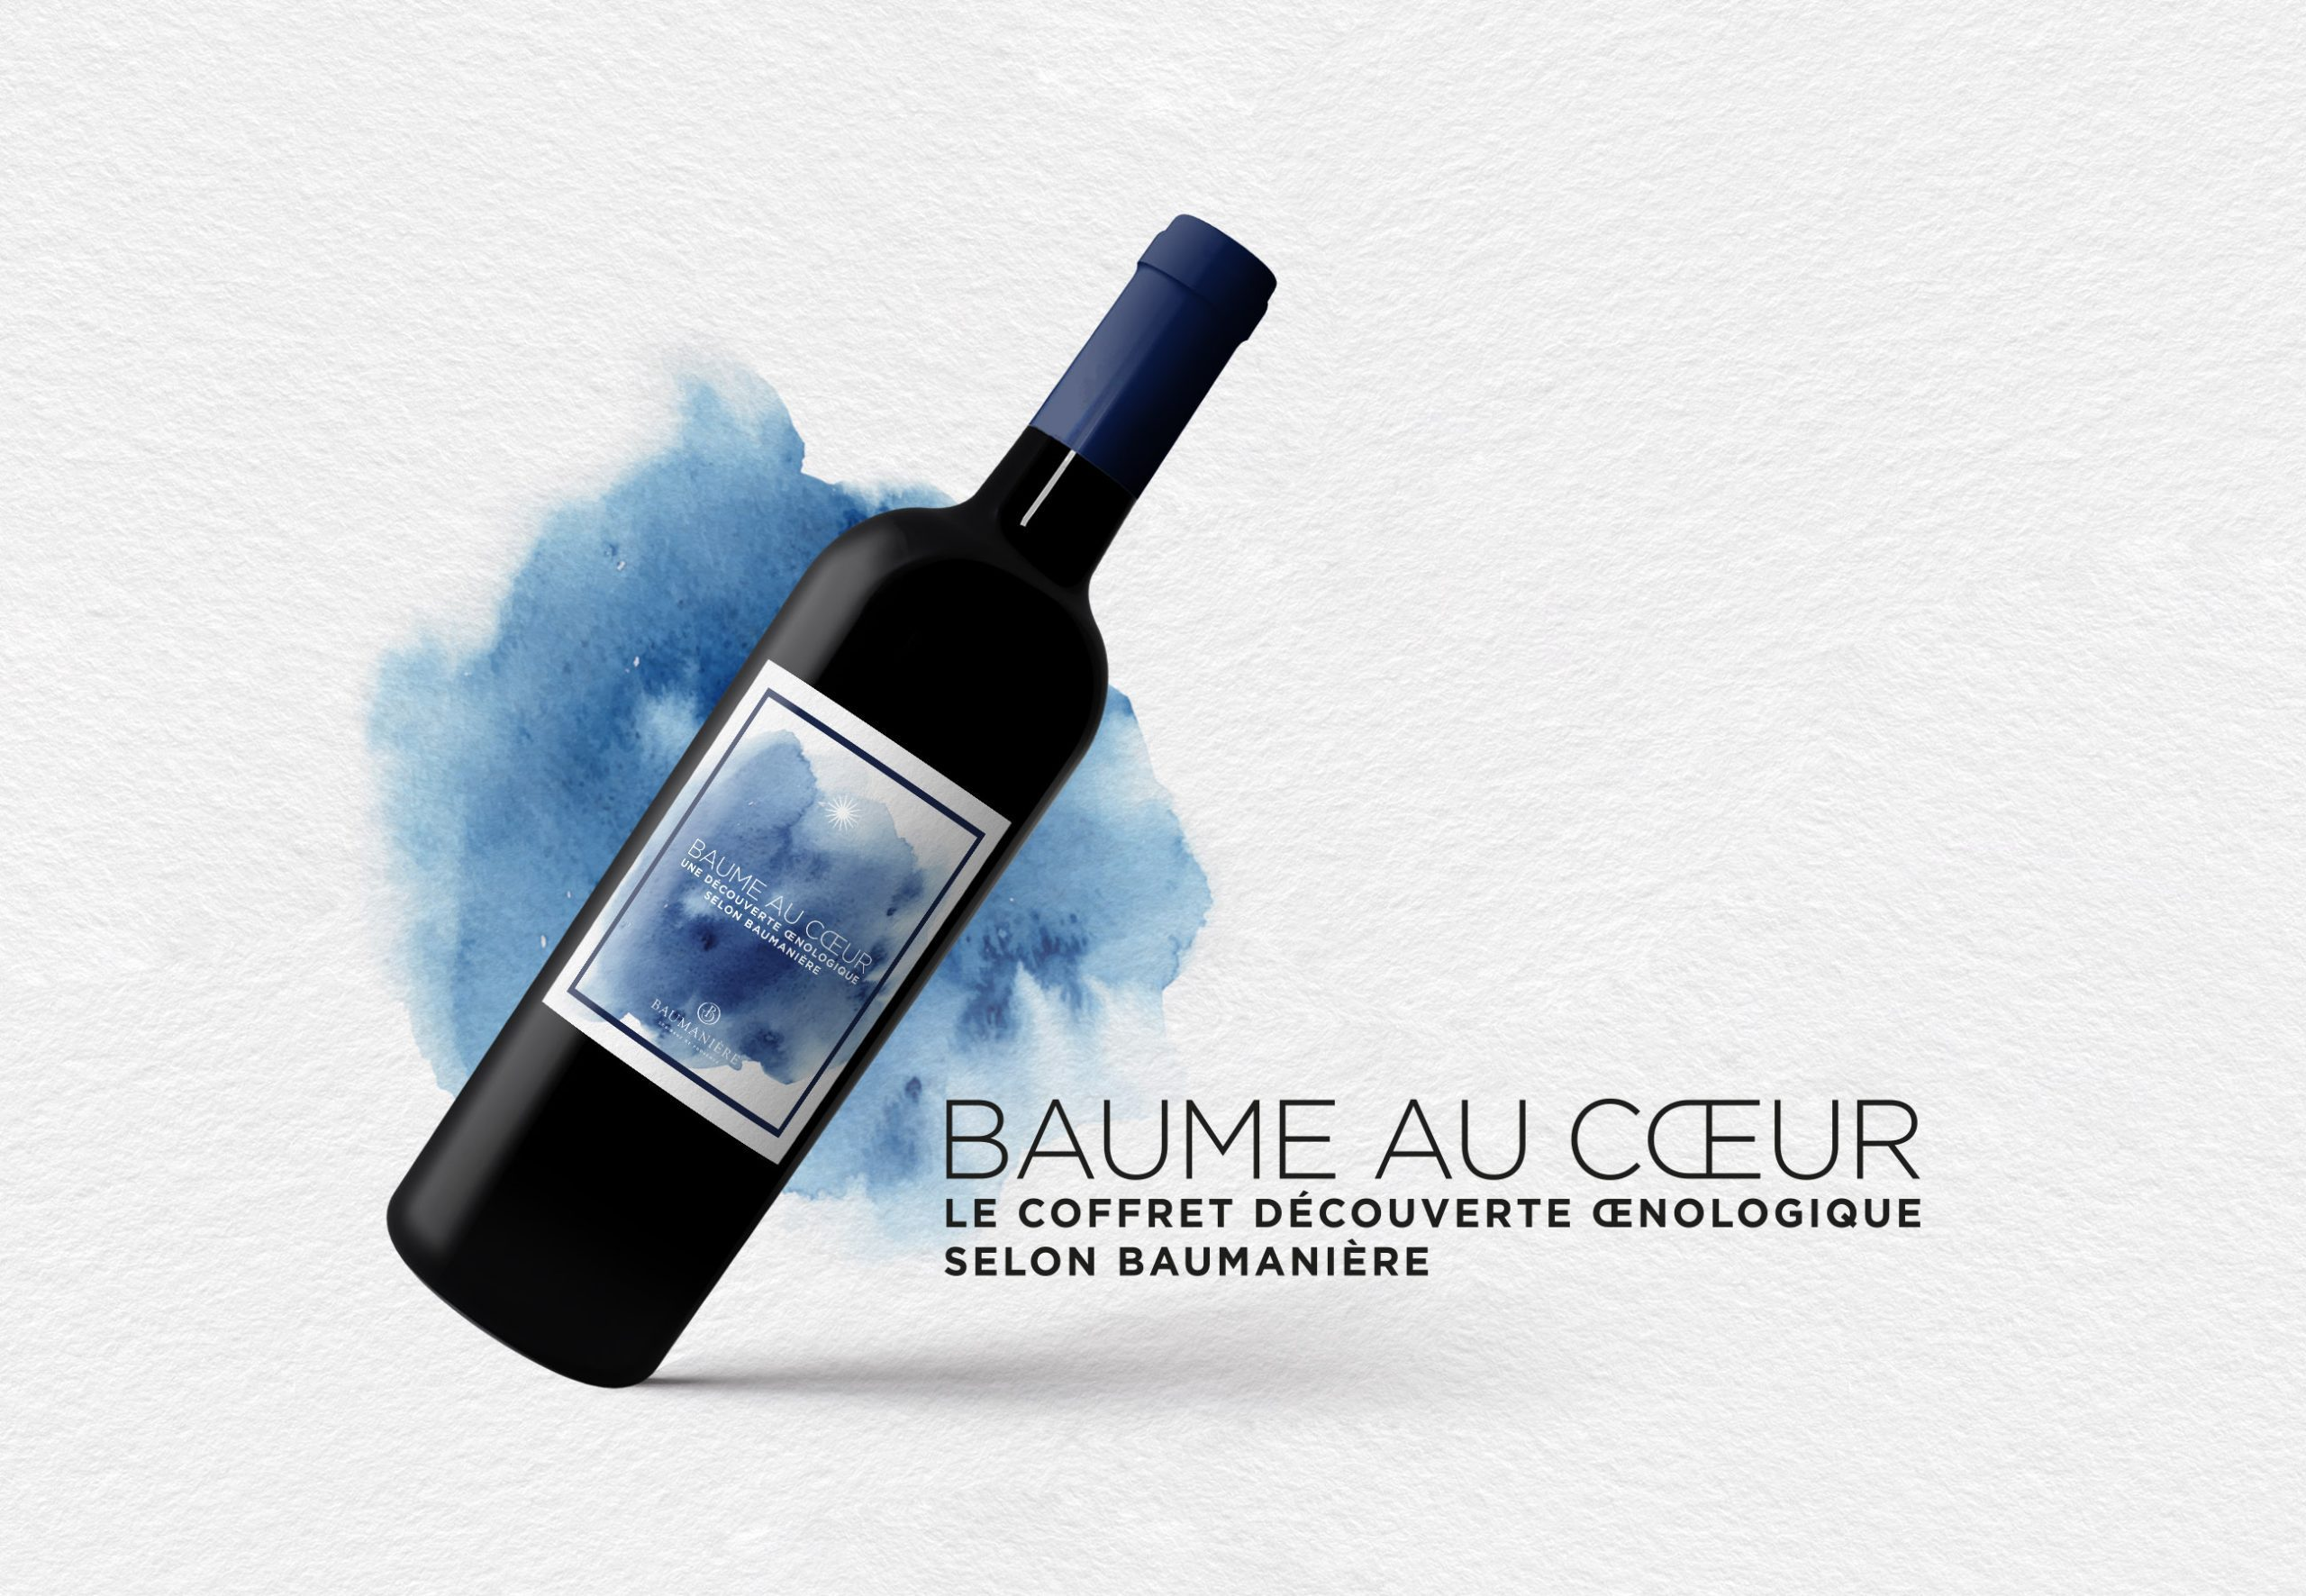 cours oenologie BAUMANIERE HOTEL 5 ETOILES PROVENCE